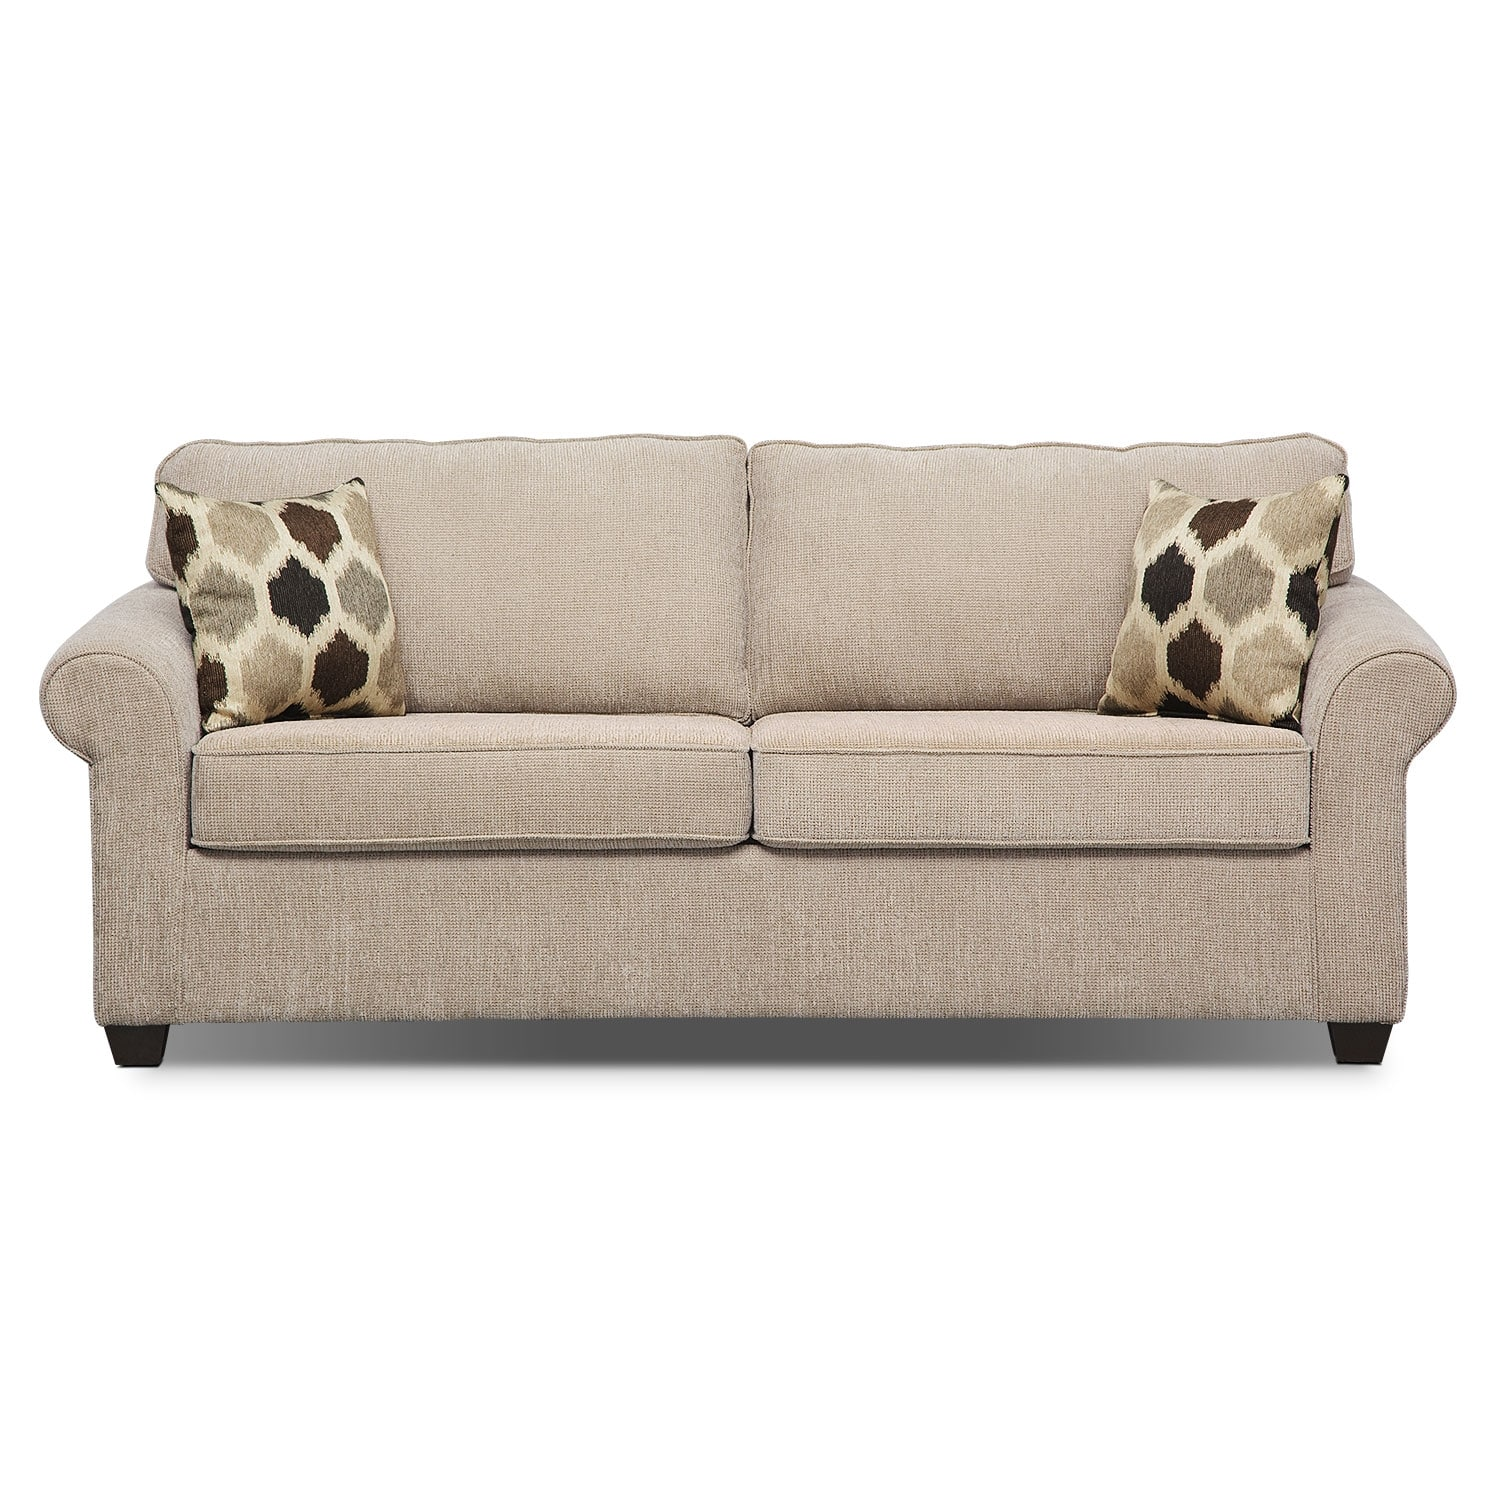 Tempurpedic Sleeper Sofa Review Rs Gold Sofa